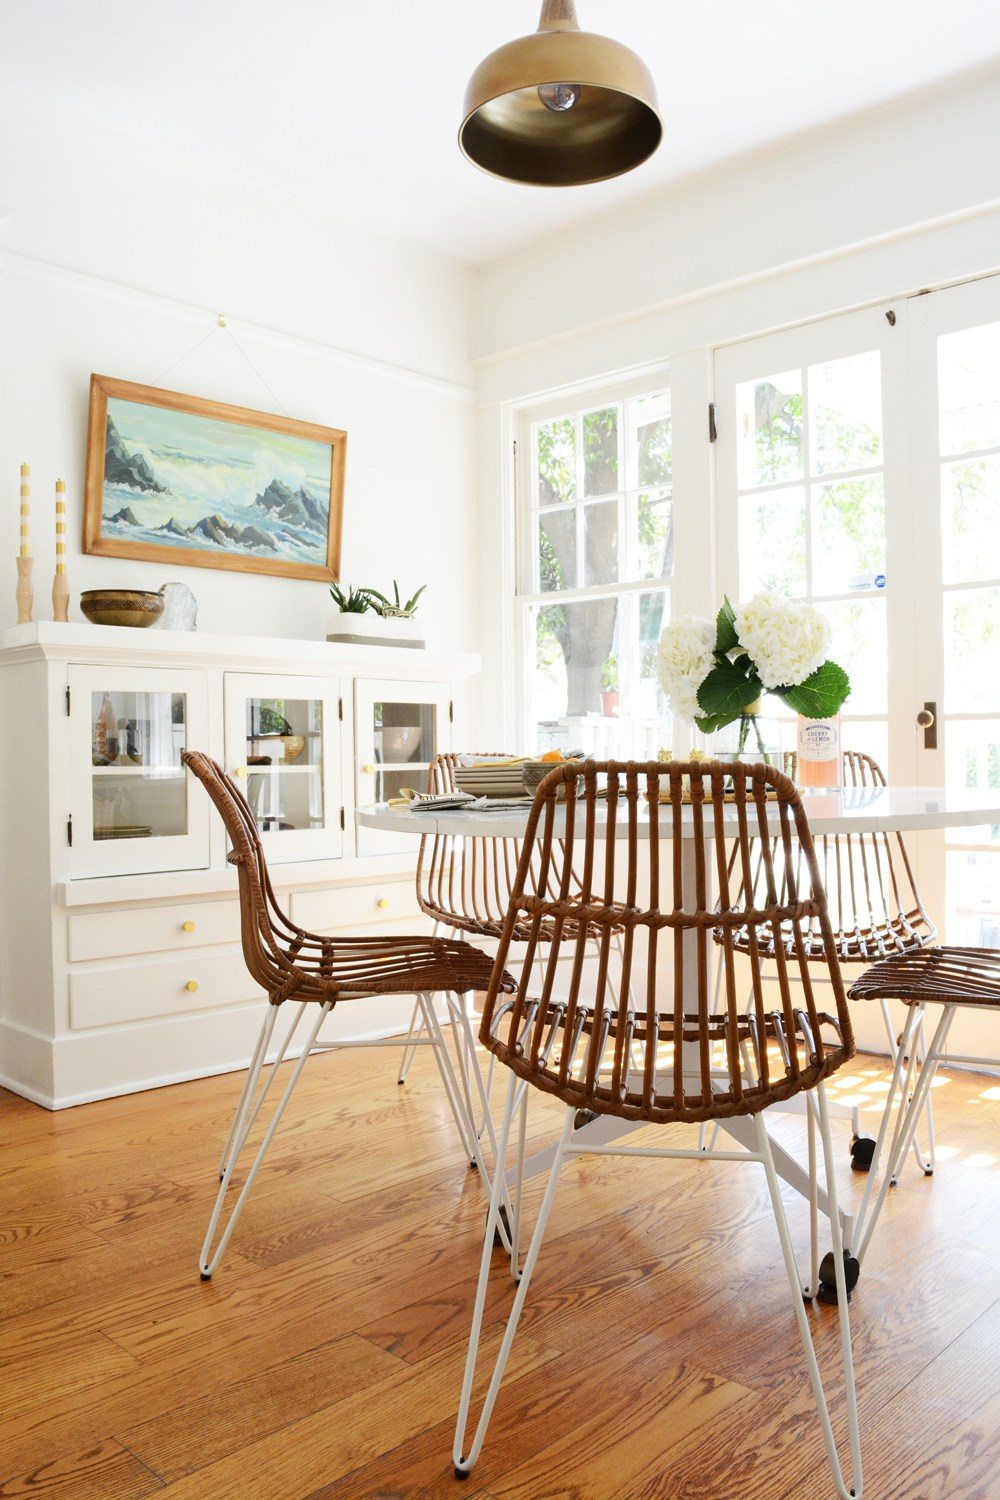 10 Beautiful Spaces: Dining Room Decor That I Love - The Sweetest ...